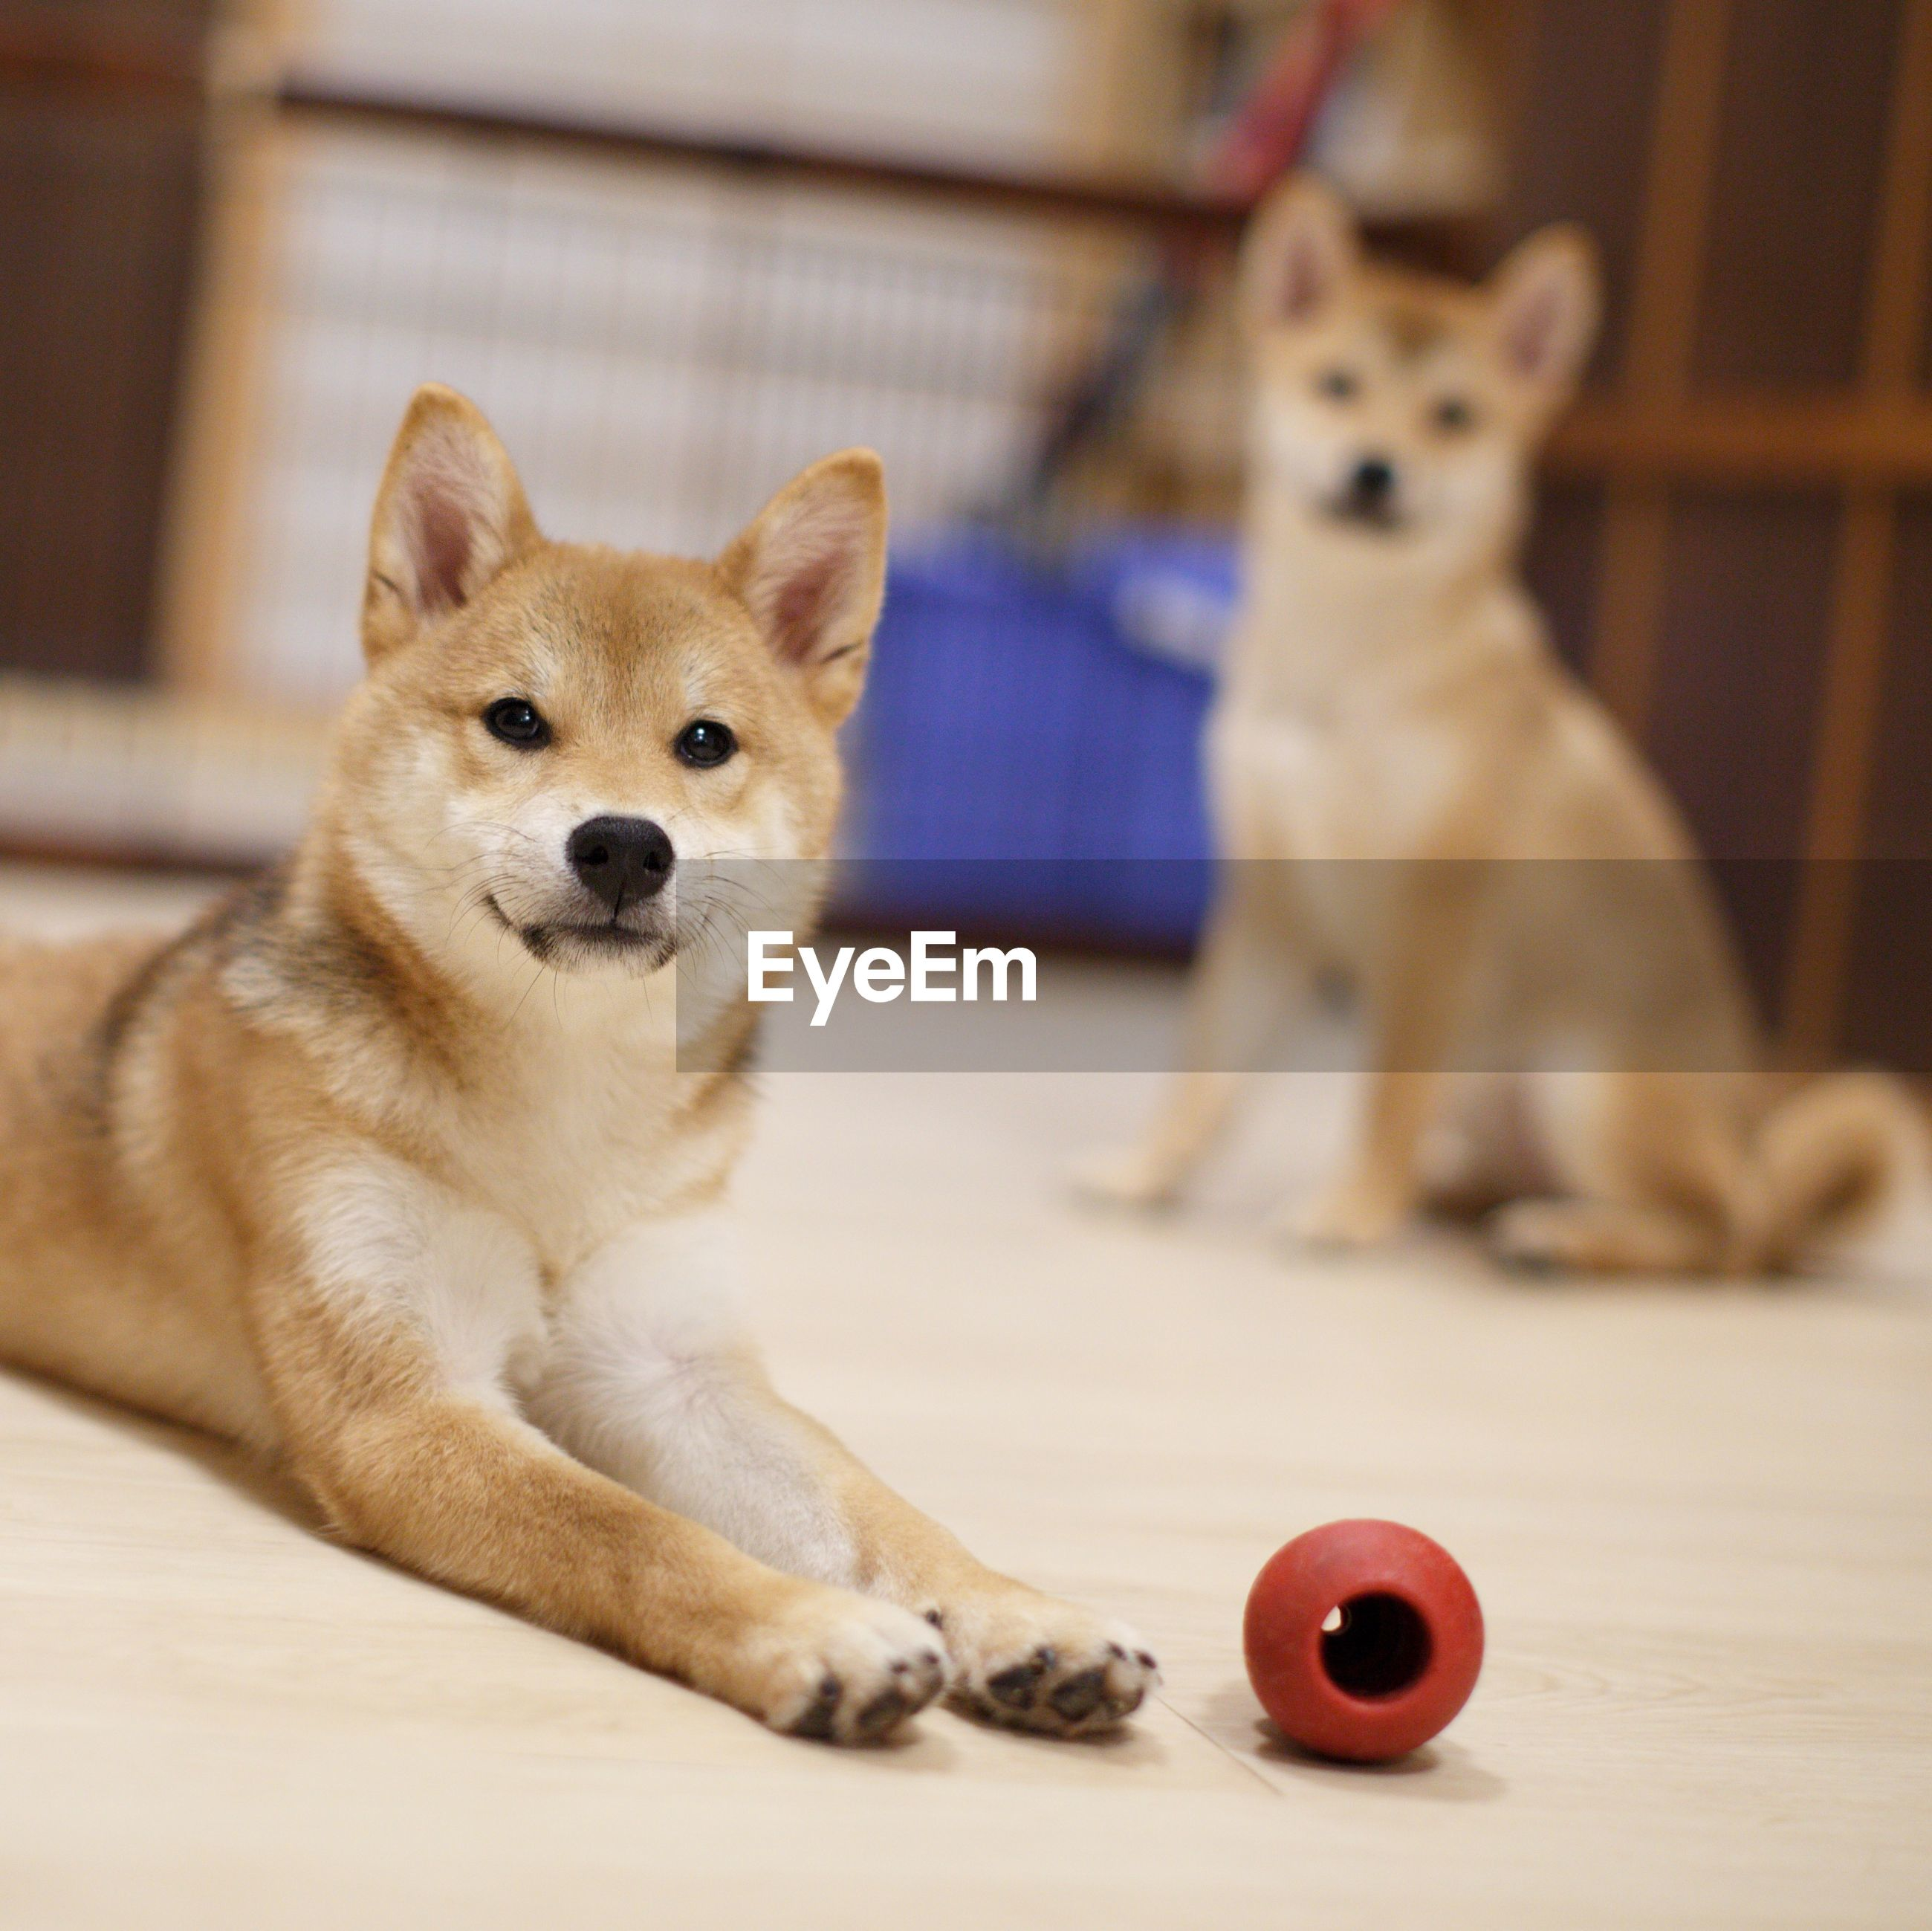 Two cute adorable shiba inus ready to play fetch the ball